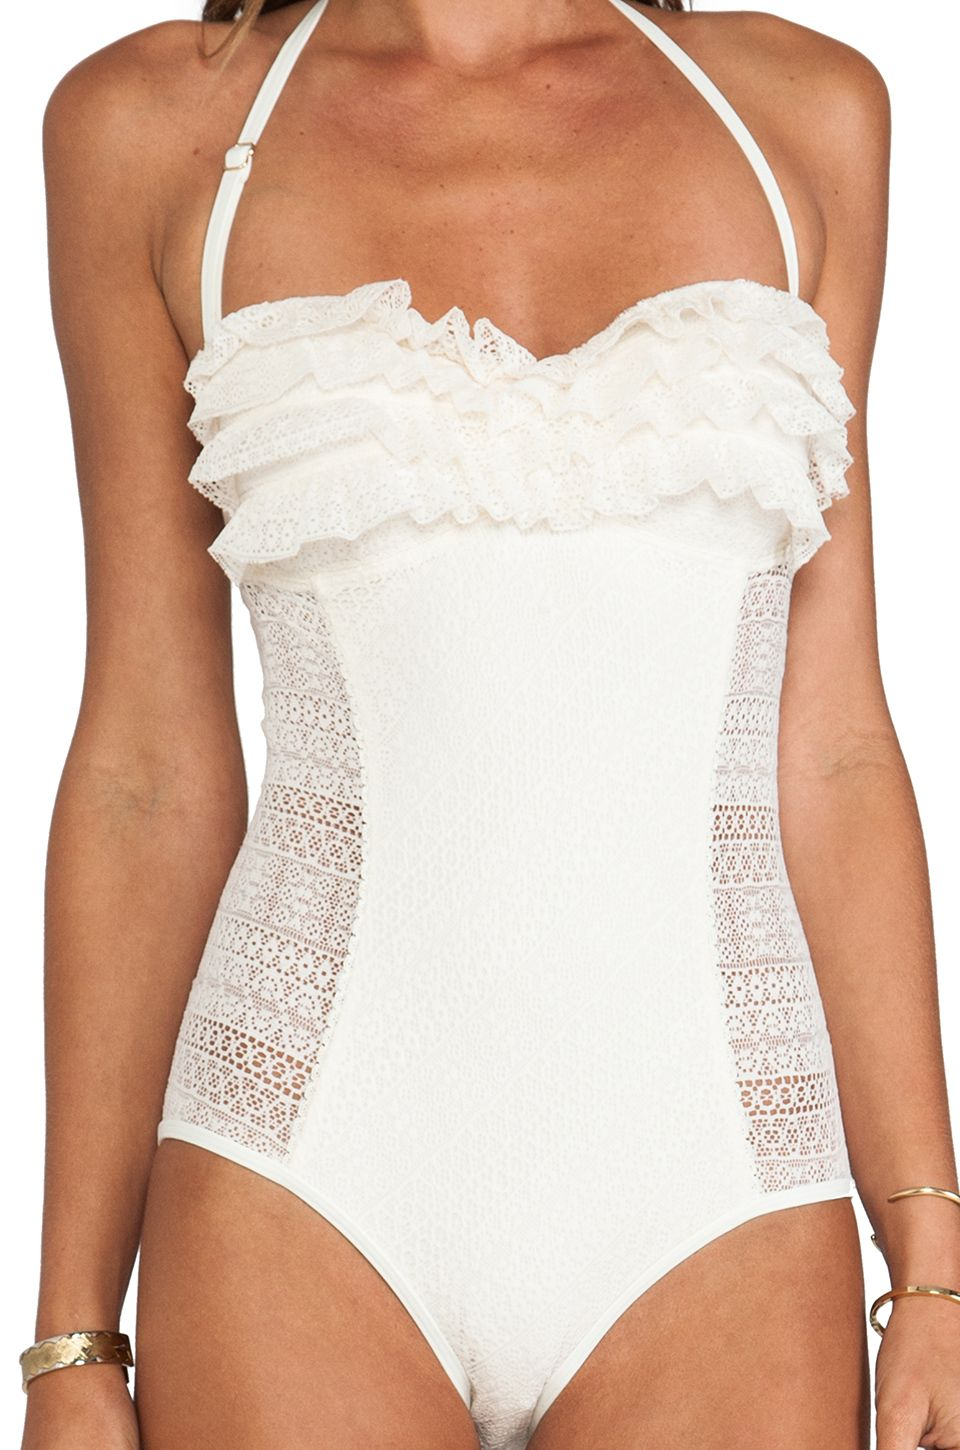 2a54601d12 Juicy Couture - Natural Ruffle Bandeau One Piece in Ivory - Lyst